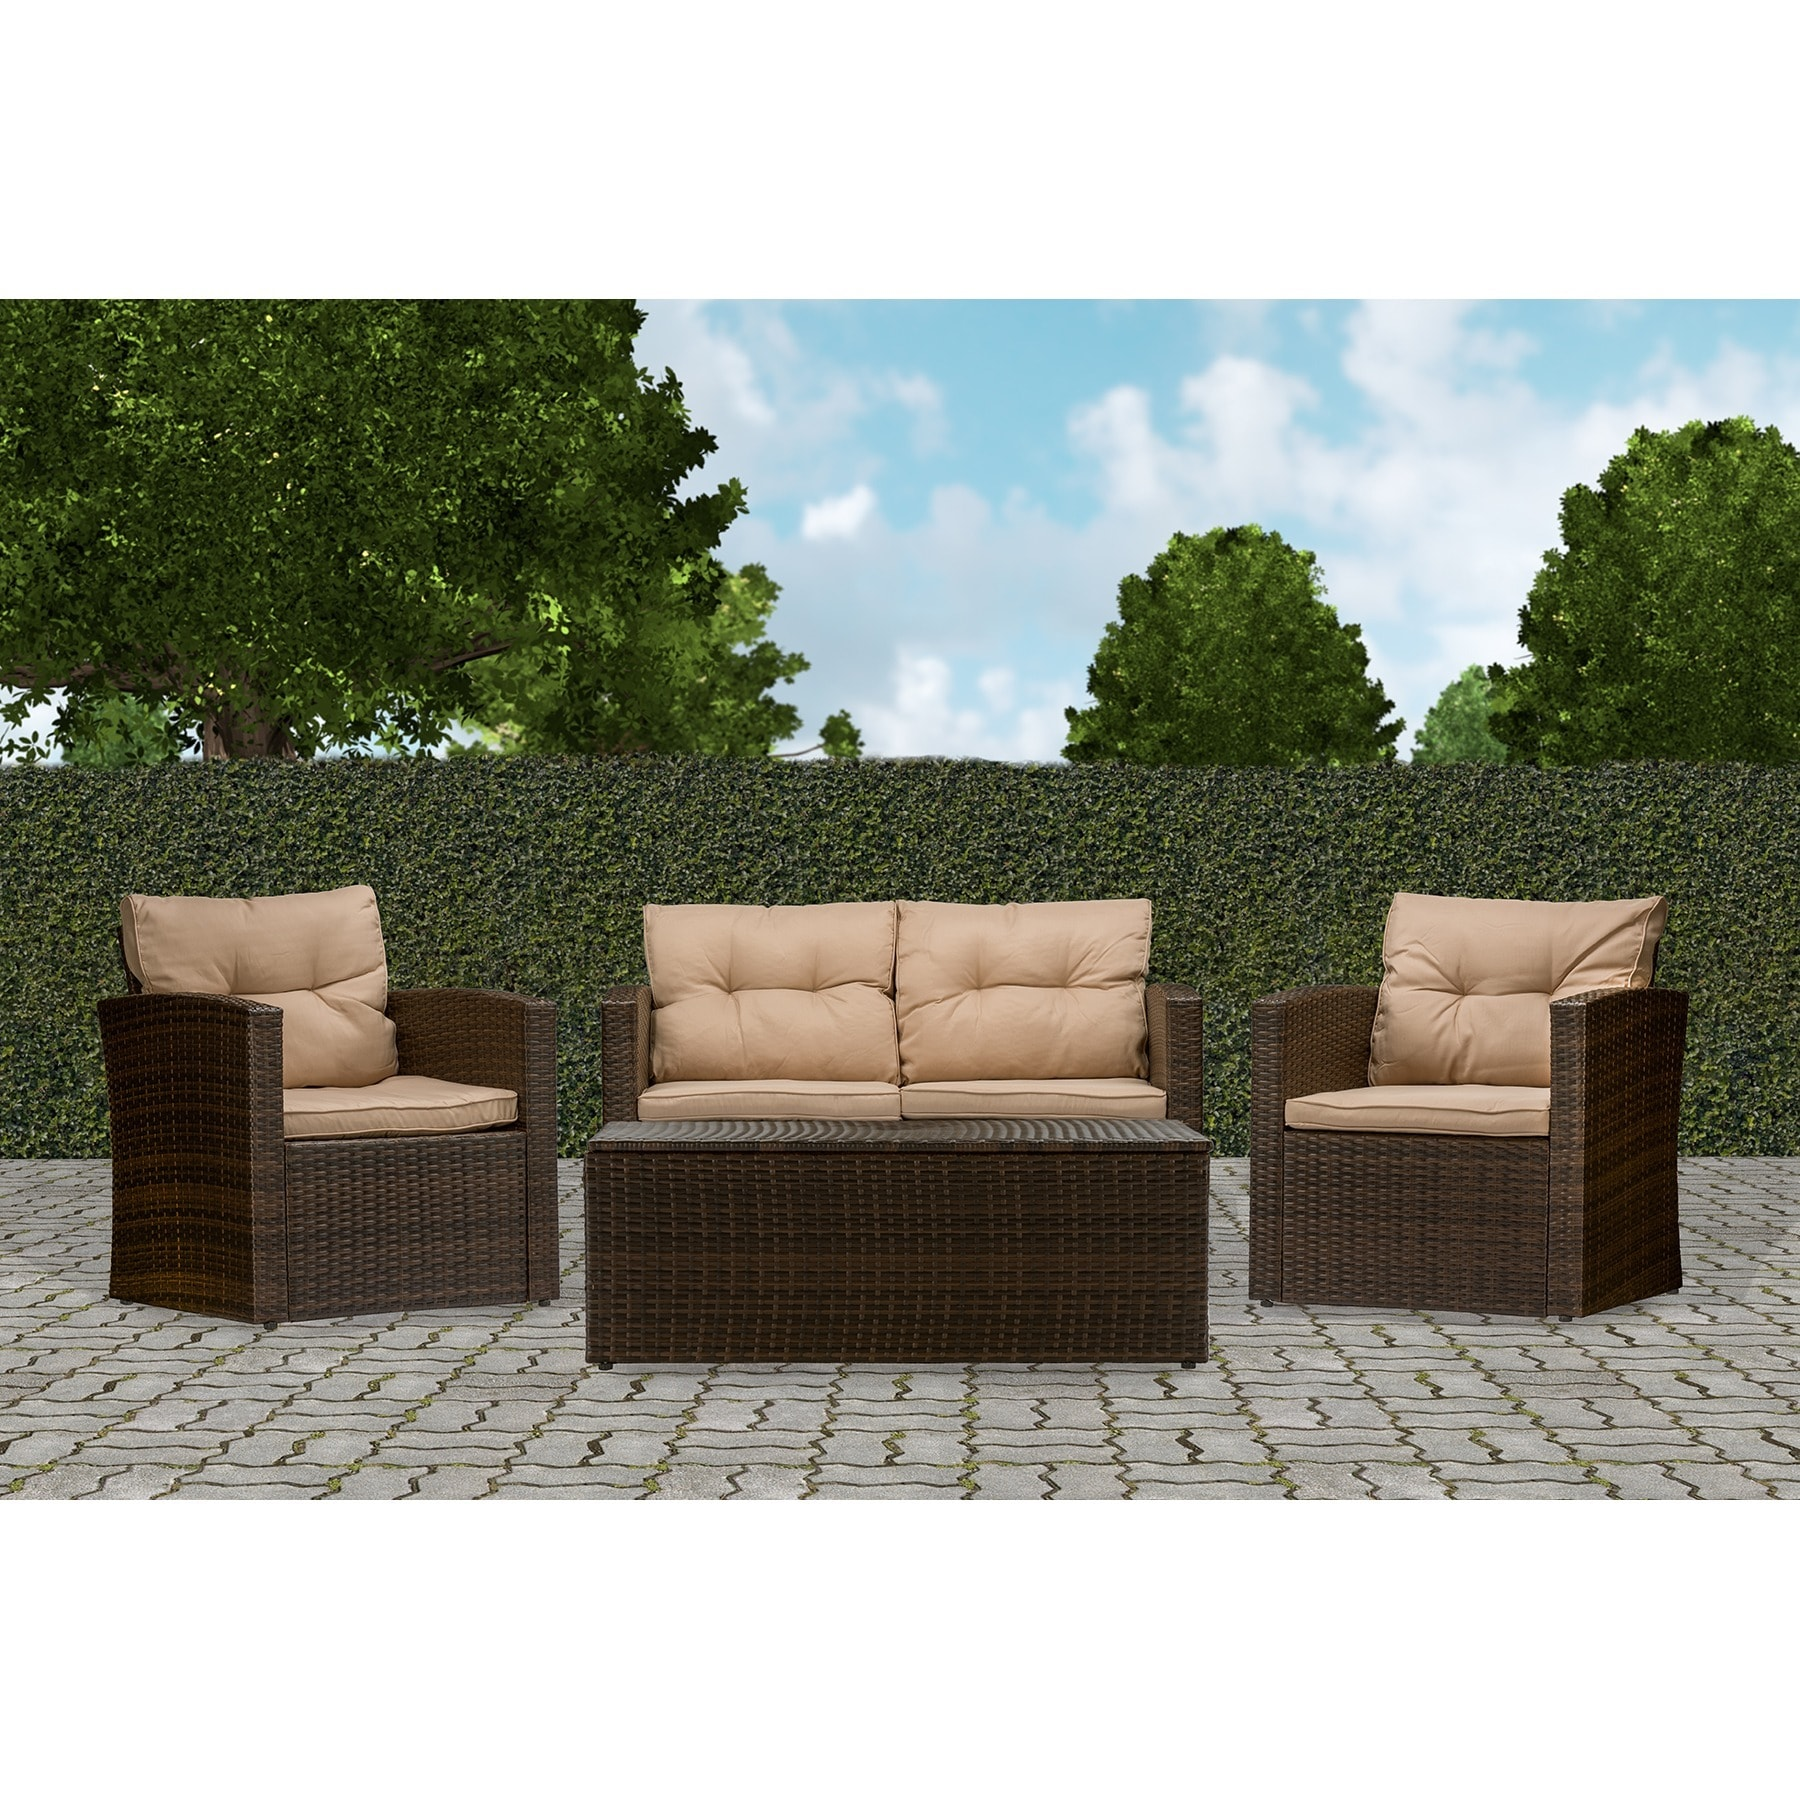 Baxton Studio Russo Modern Contemporary PE Rattan 4 piece Outdoor